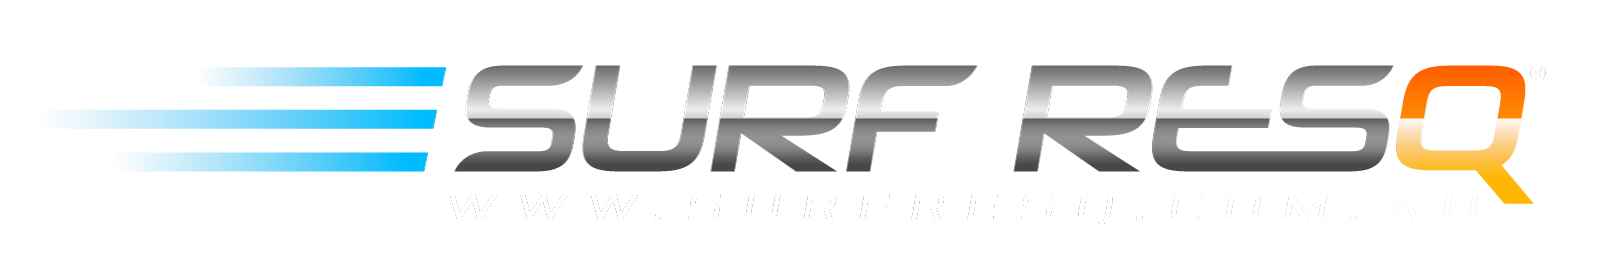 logo_Surf-ResQ_website.png